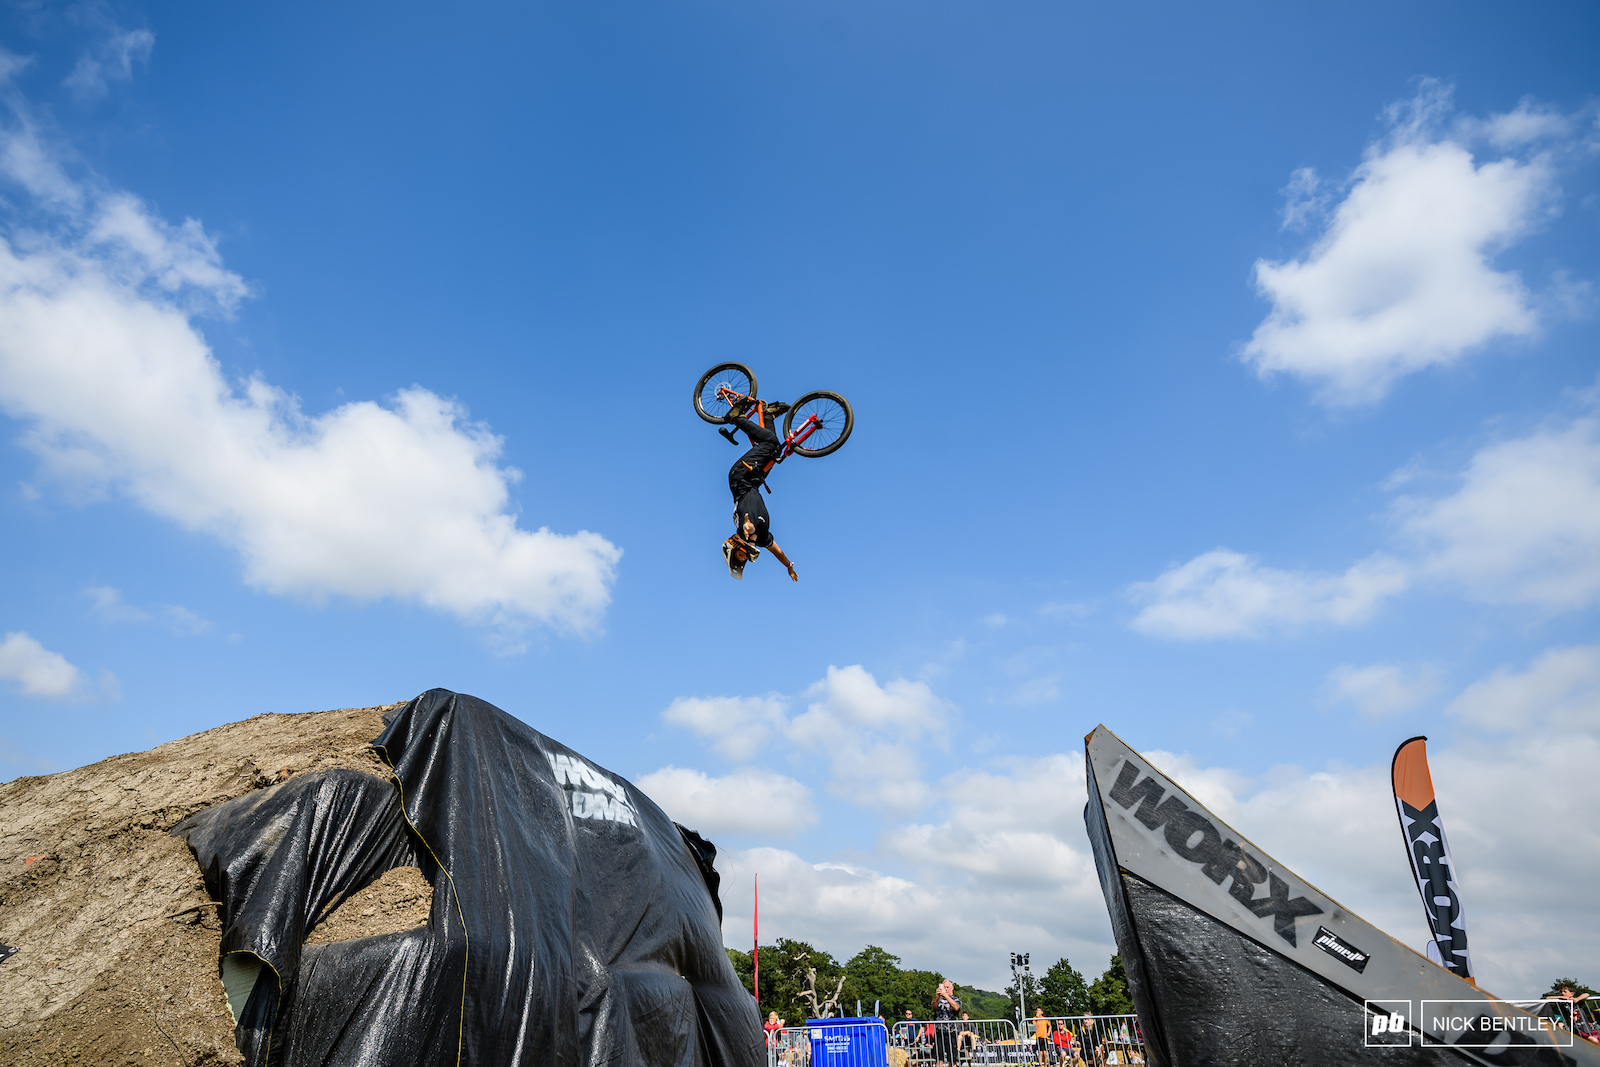 Finley Davies sending a massive Tuck No Hander back Flip - not bad for a 12 year old